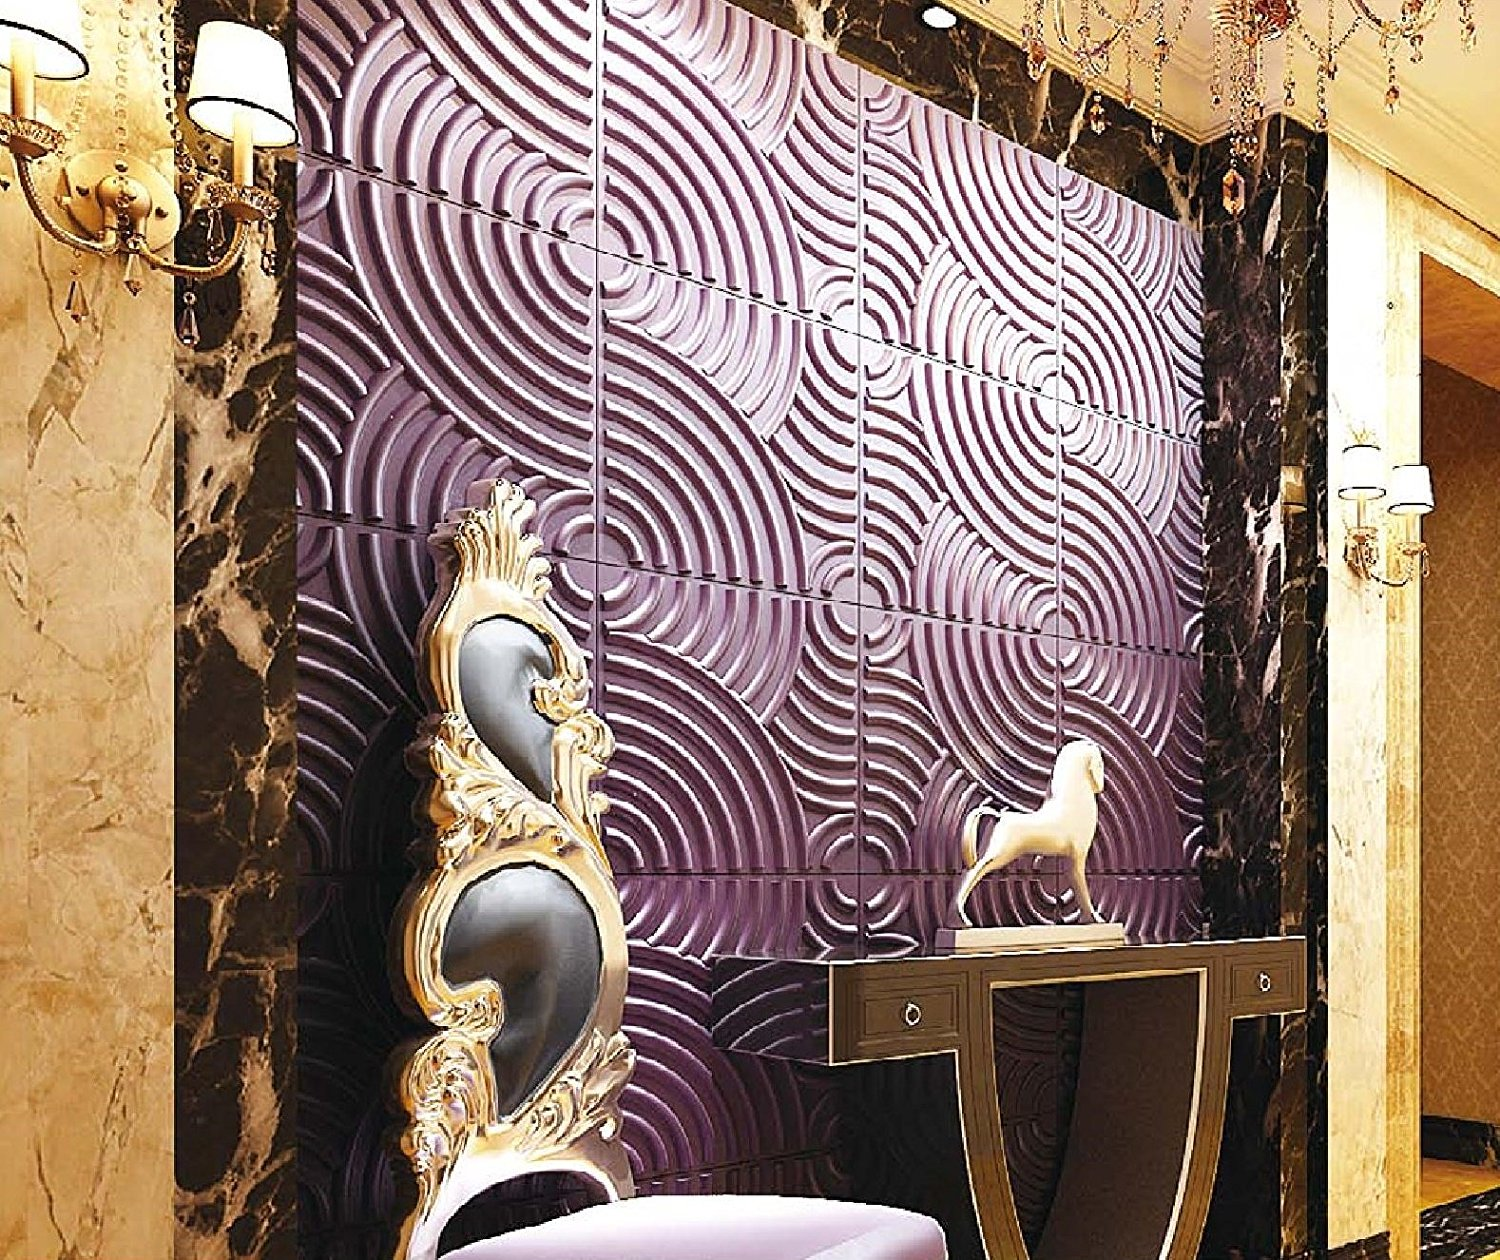 Affordable Home Innovations Modern Rainbow 3d Wall Panels Eco-friendly 32 Sq Ft